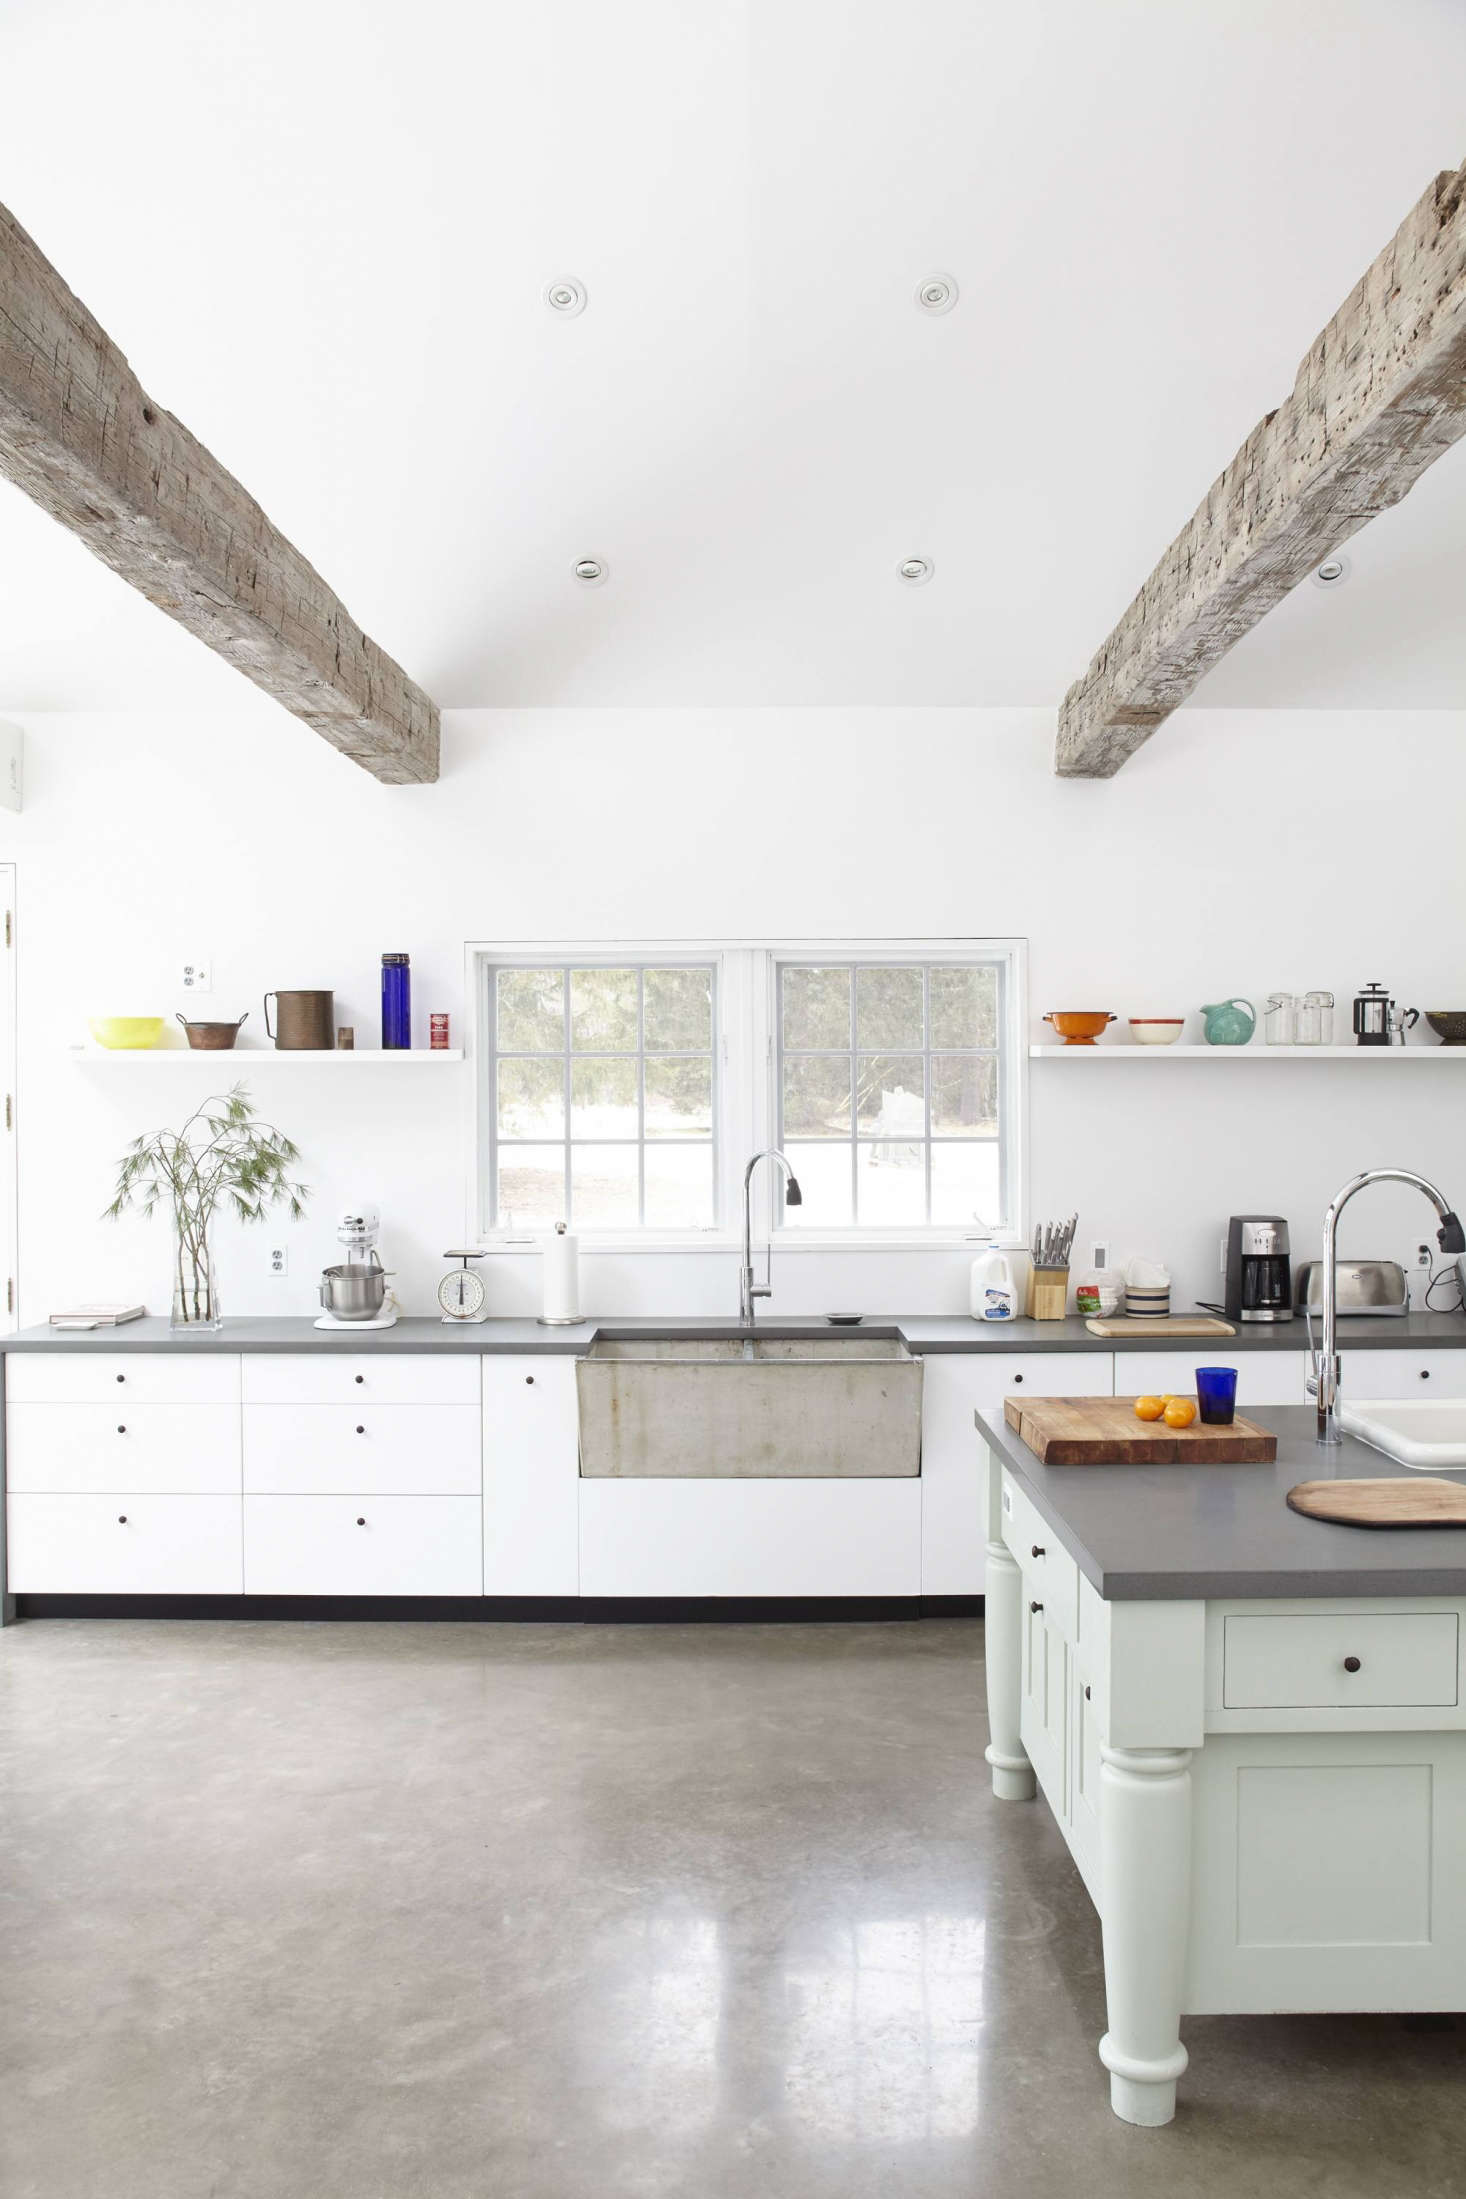 Bluestone countertops and lacquered cabinetry contrast with a vintage concrete sink. The floor is polished concrete.